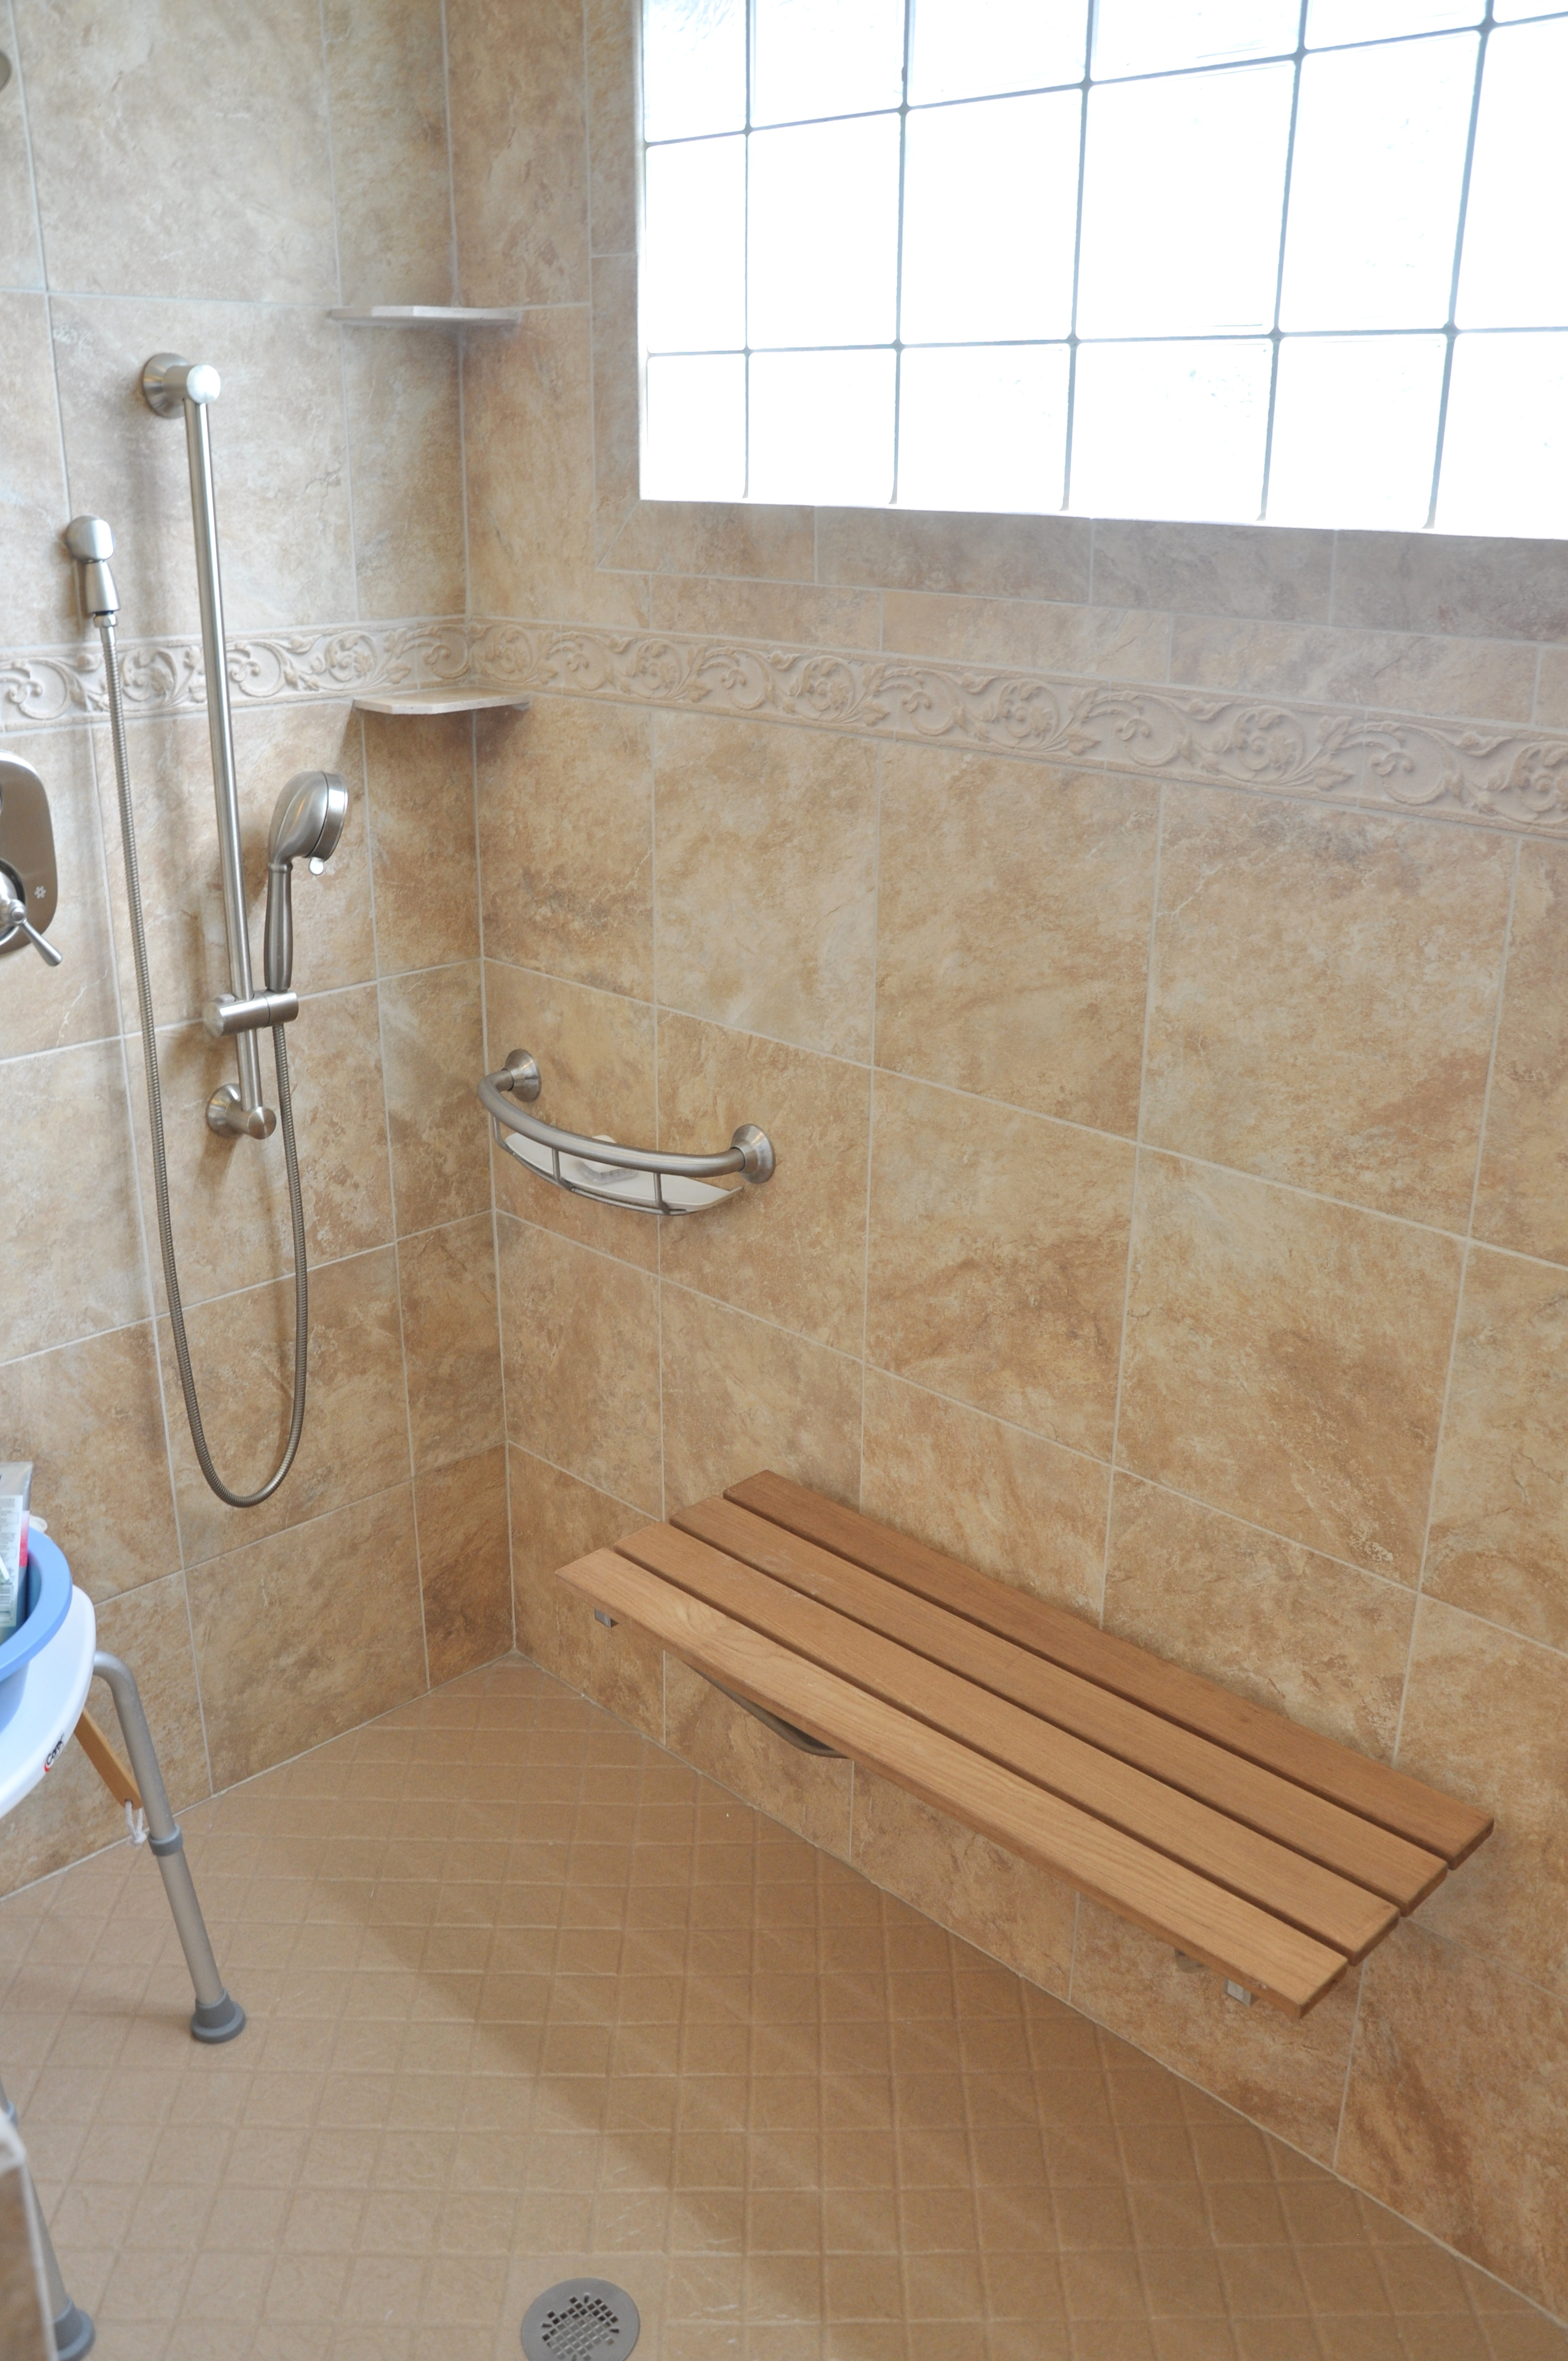 perfect walk-in shower for safety--bench, hand-held shower, soap dish grab bar